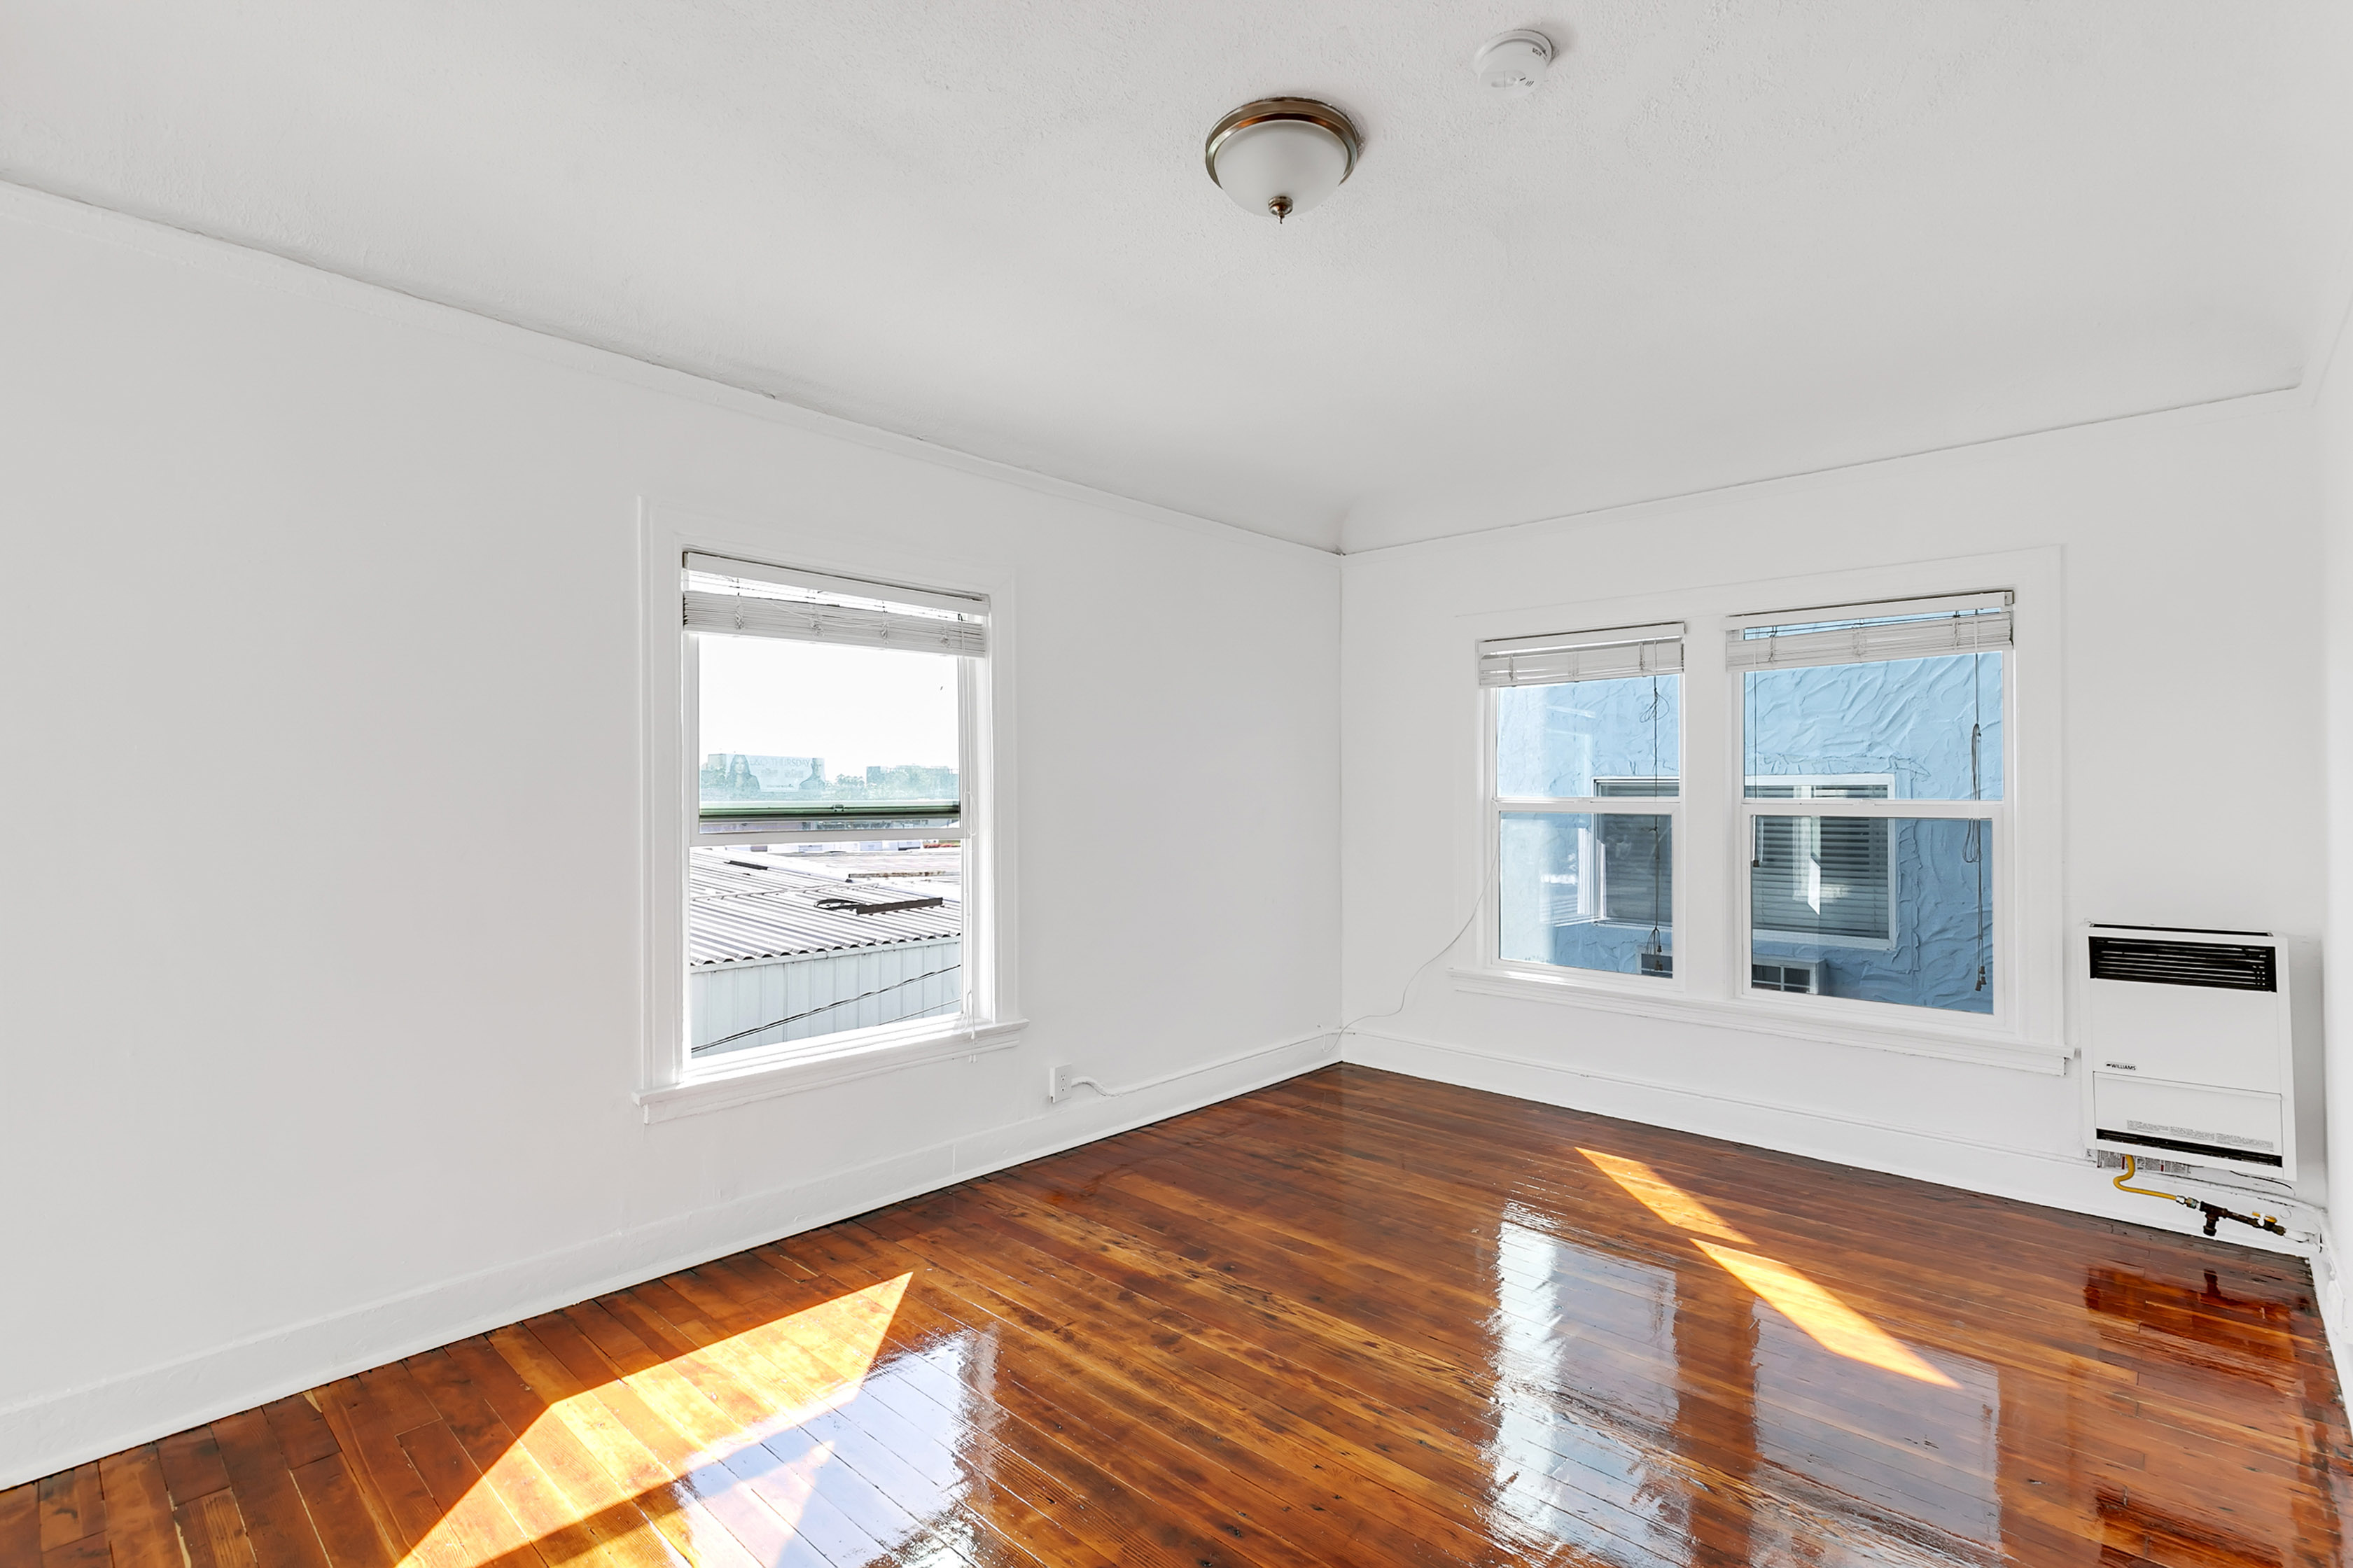 Open Floorplan Studio at a Fantastic Price! Laundry Onsite! Great Location!